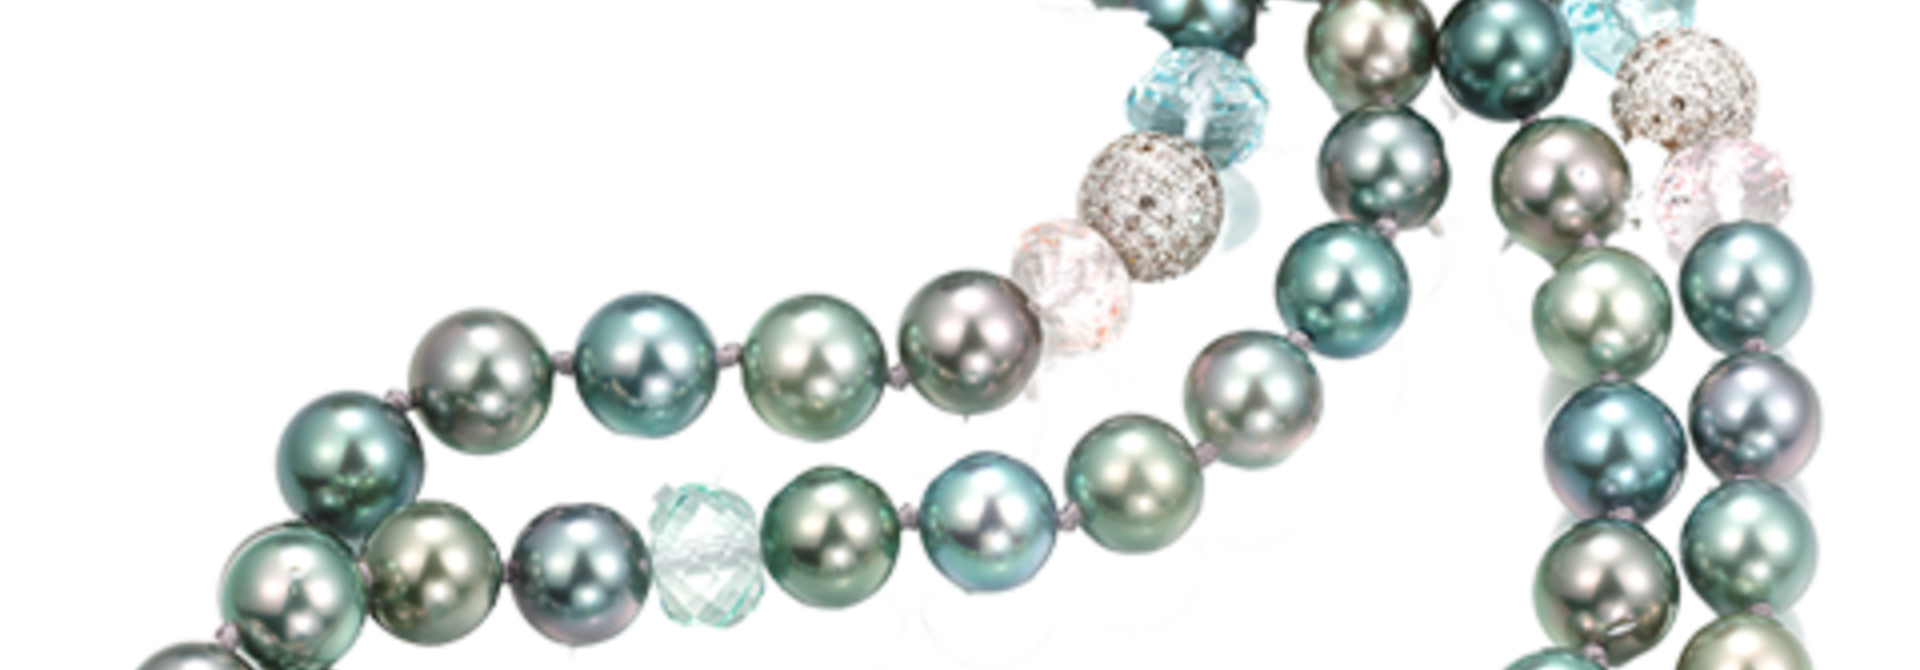 Tahitian Pearl, Aquamarine, Beryl & Morganite Necklace - 45""